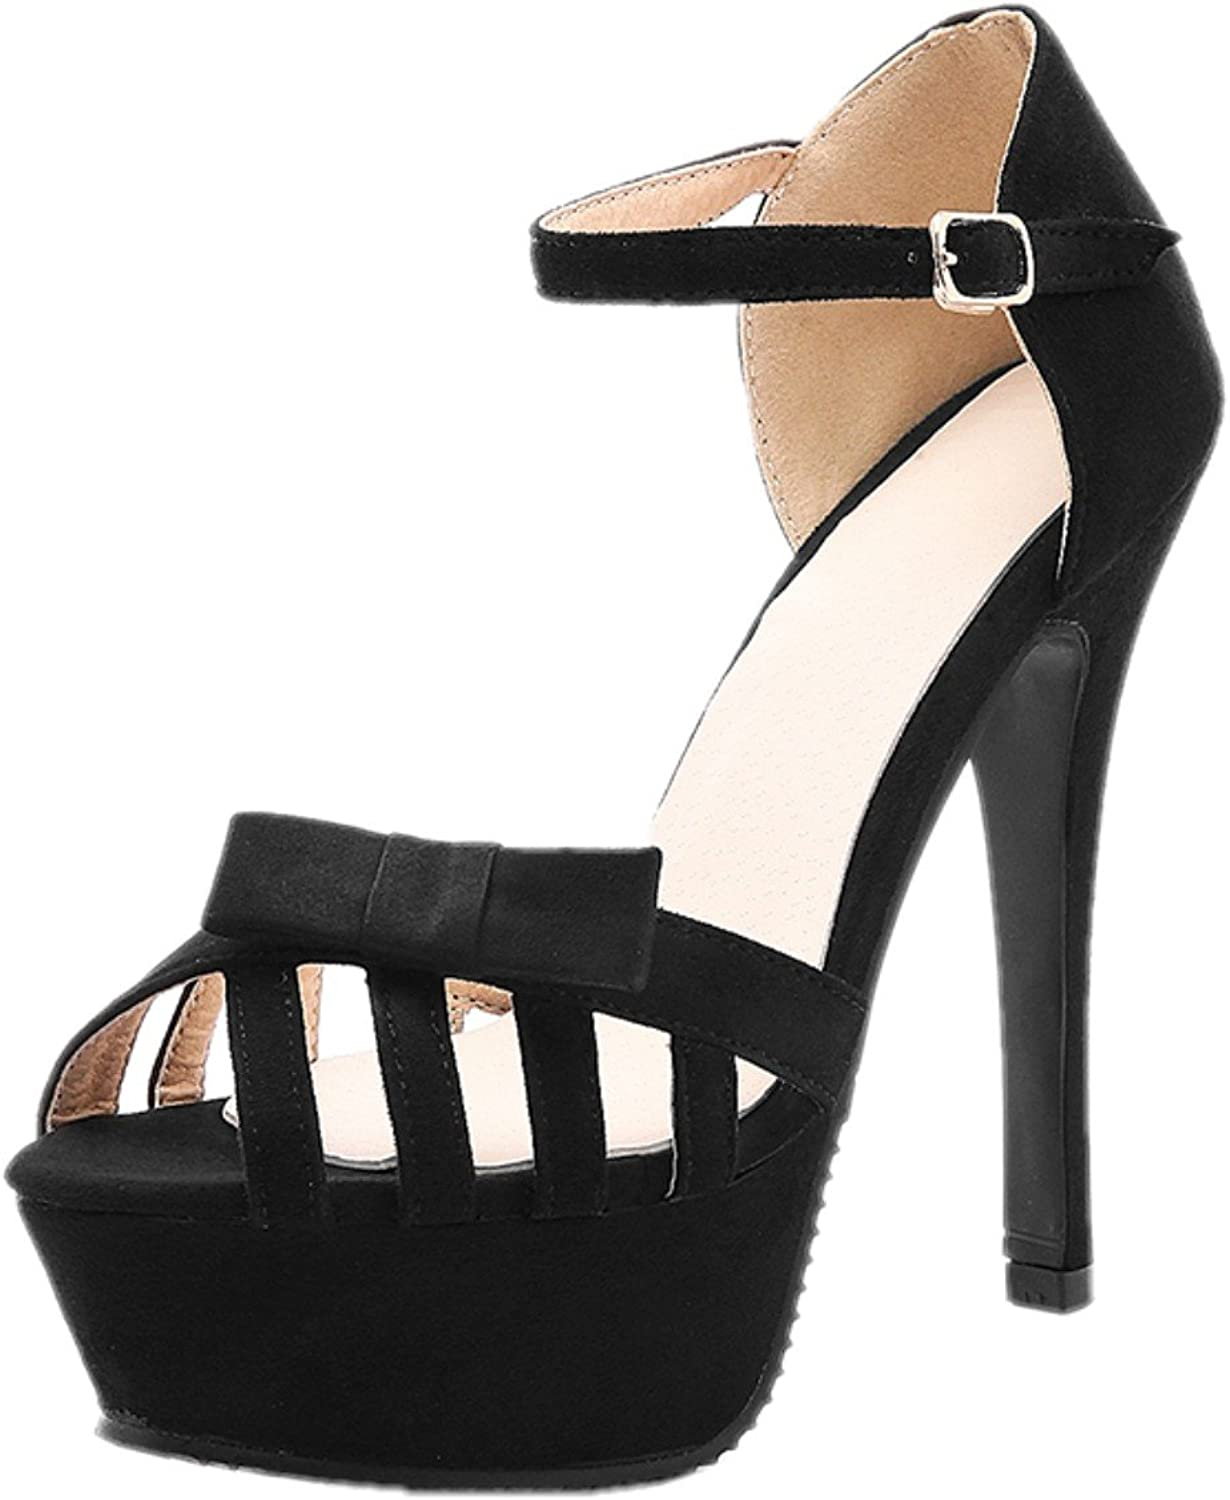 Rongzhi Womens High Heels Ankle Strap Stilettos Pumps Platform Heeled Sandals Prom Party shoes Open Toe Black